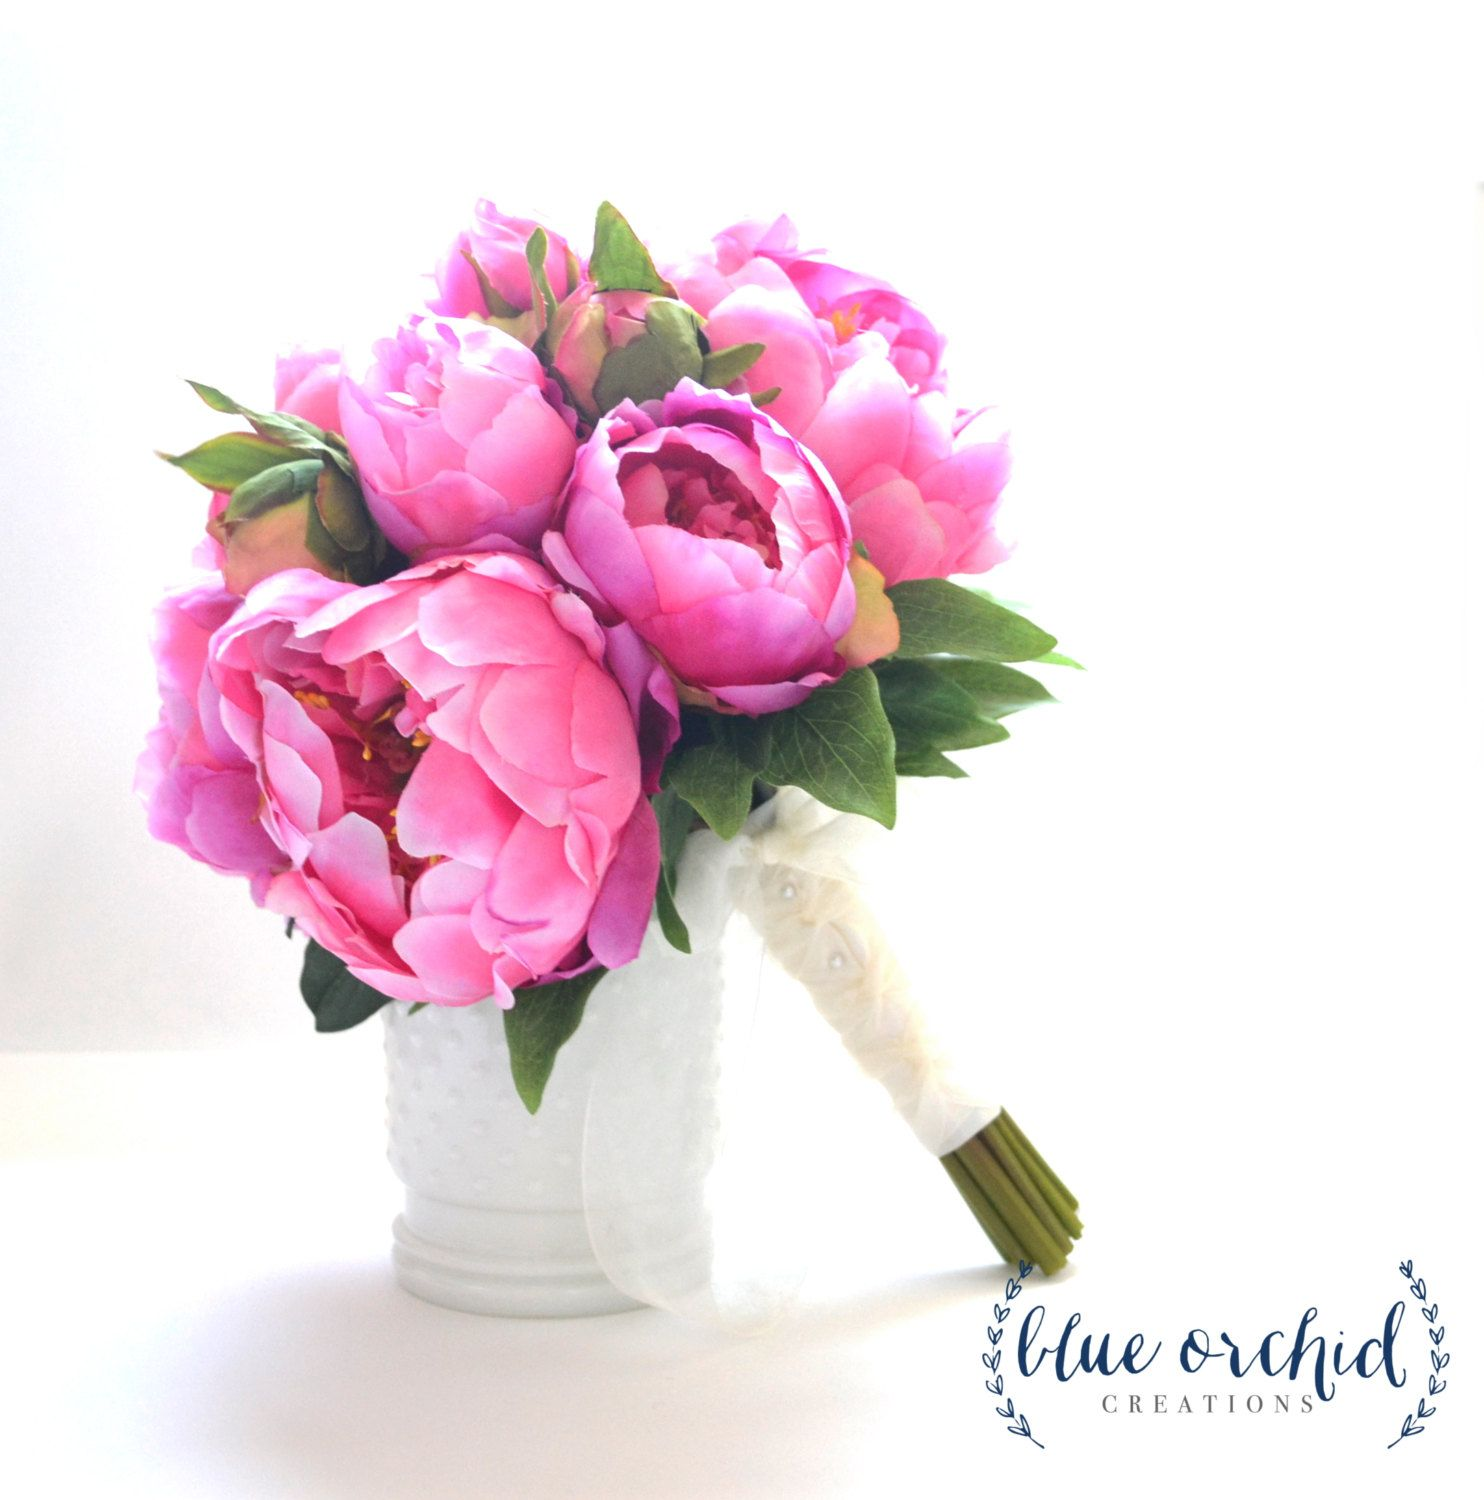 Hot pink peony bouquet peony wedding bouquet hot pink peonies peony bouquet with white and pink peonies silk peony wedding bouquet peonies cream and blush peonies dhlflorist Images